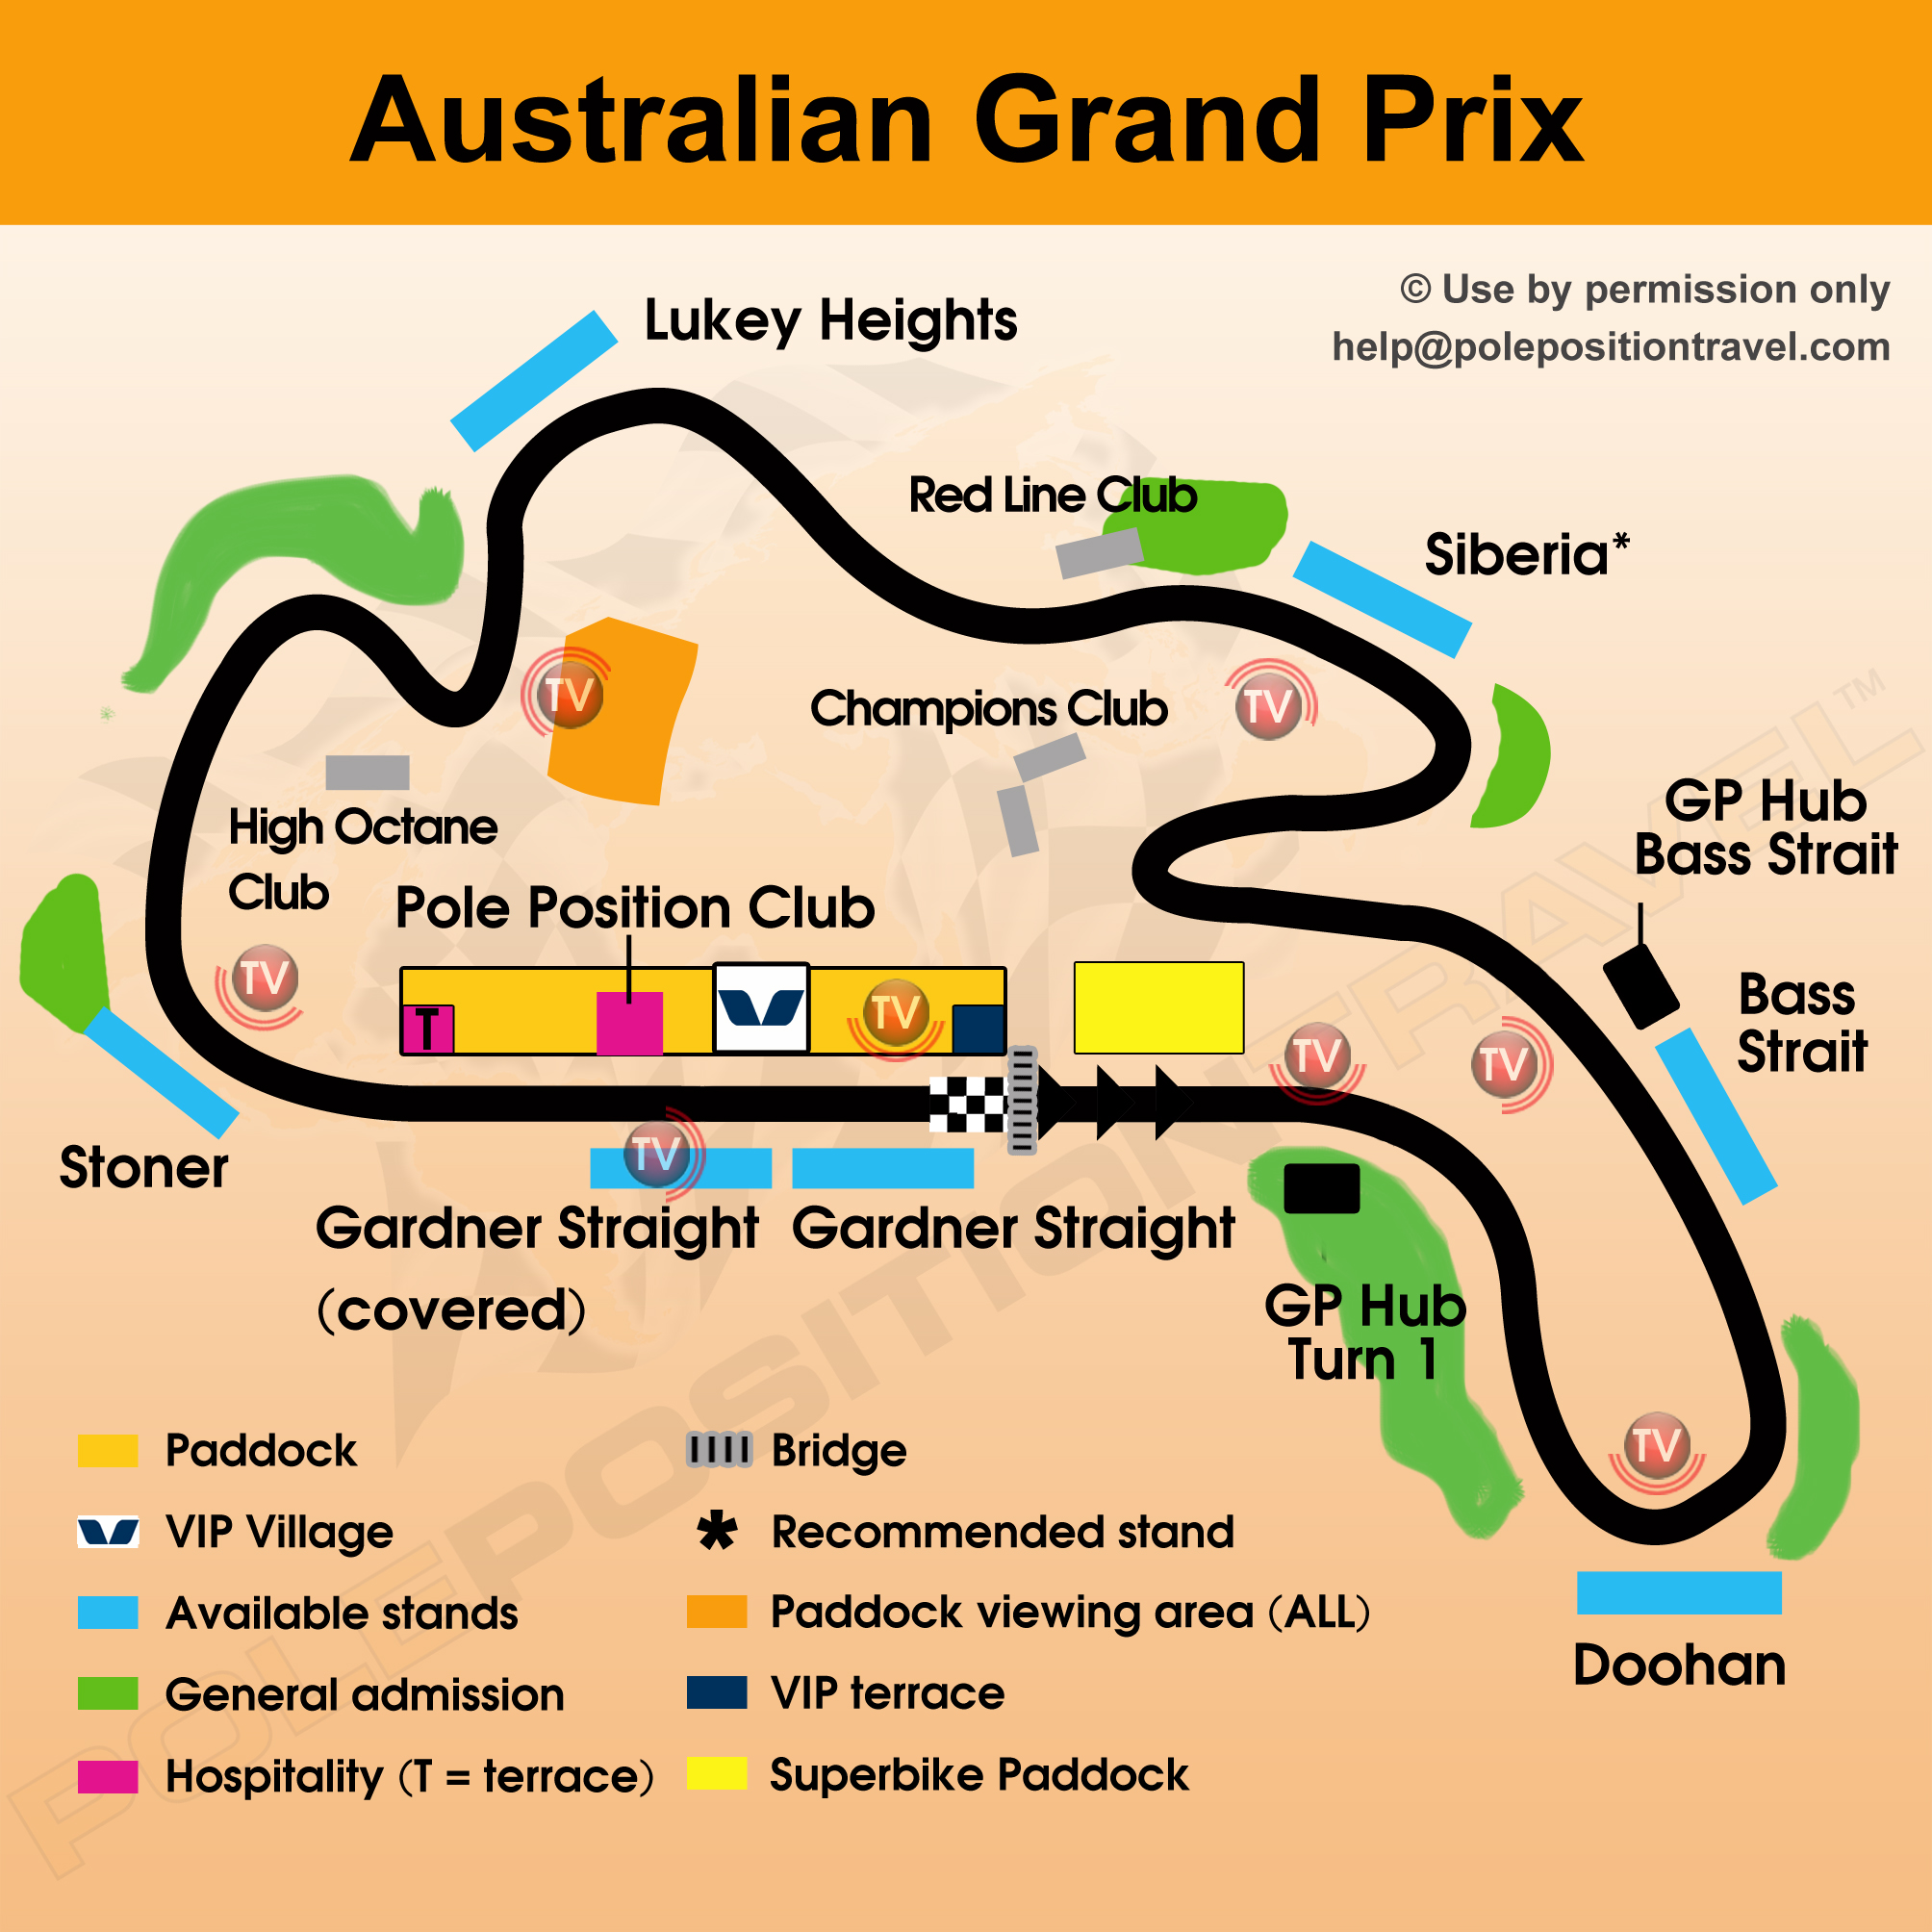 Australian Grand Prix 2017 Circuit map